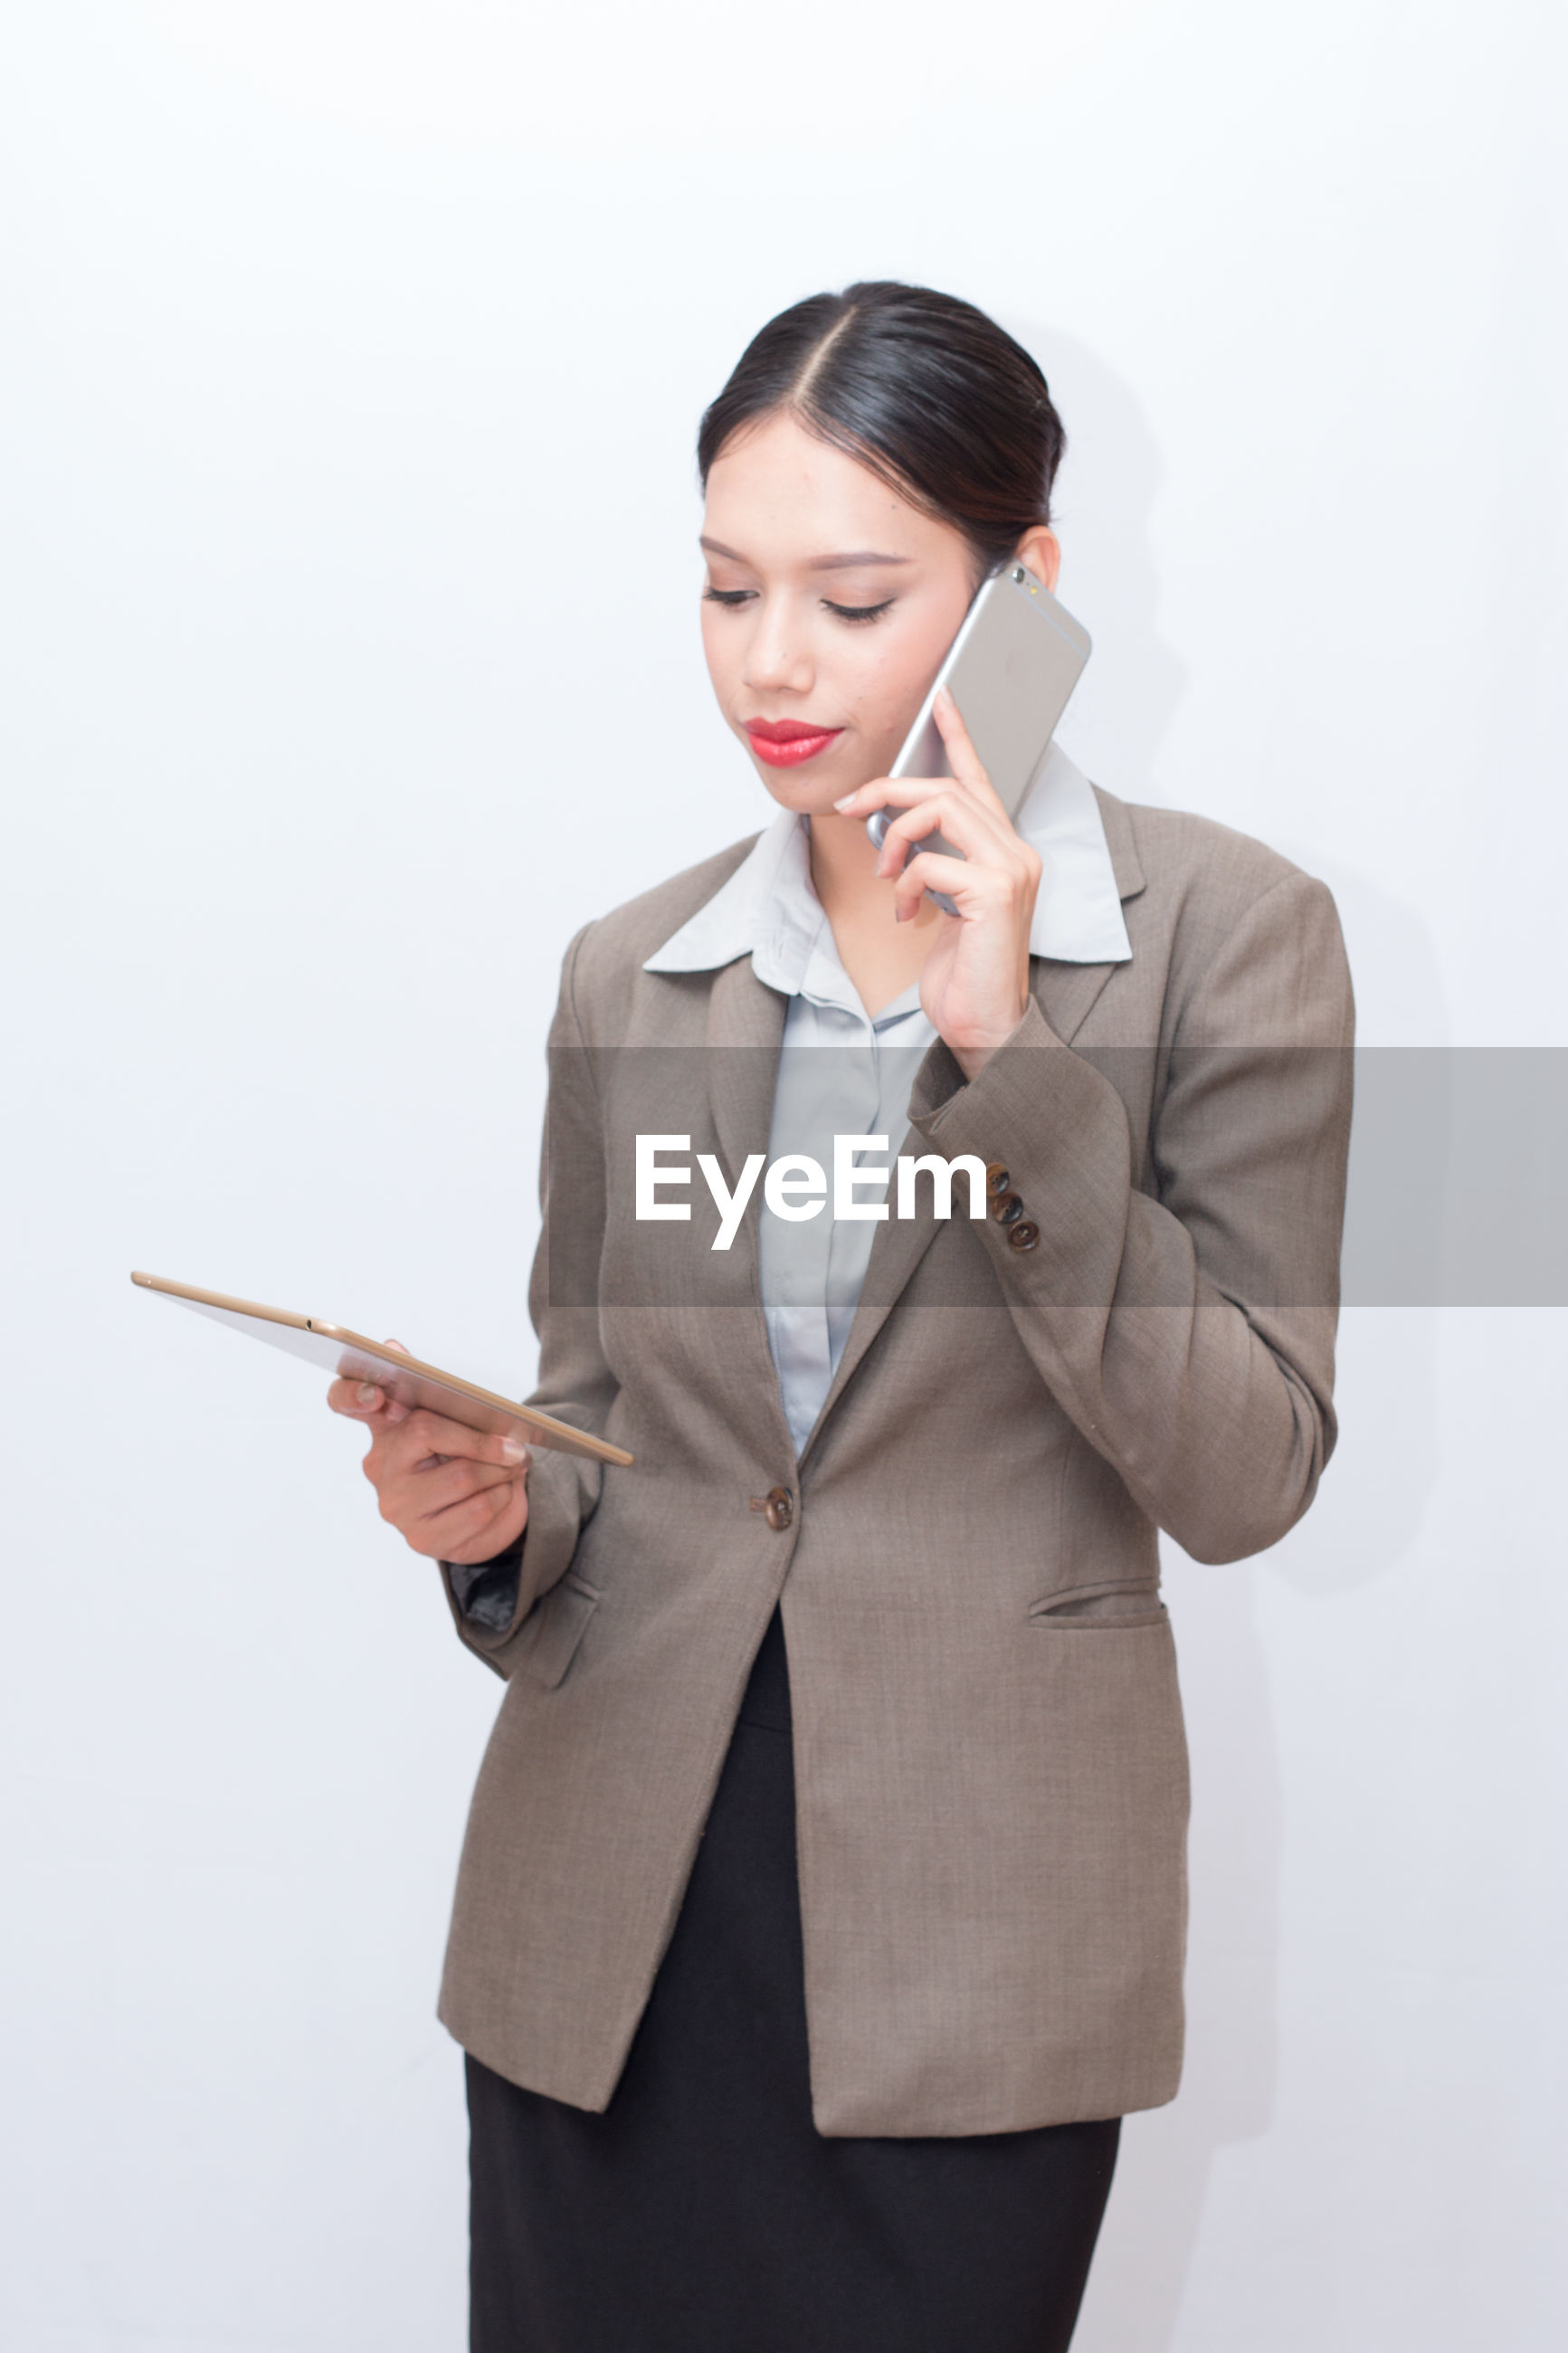 Businesswoman using digital tablet and mobile phone against white background